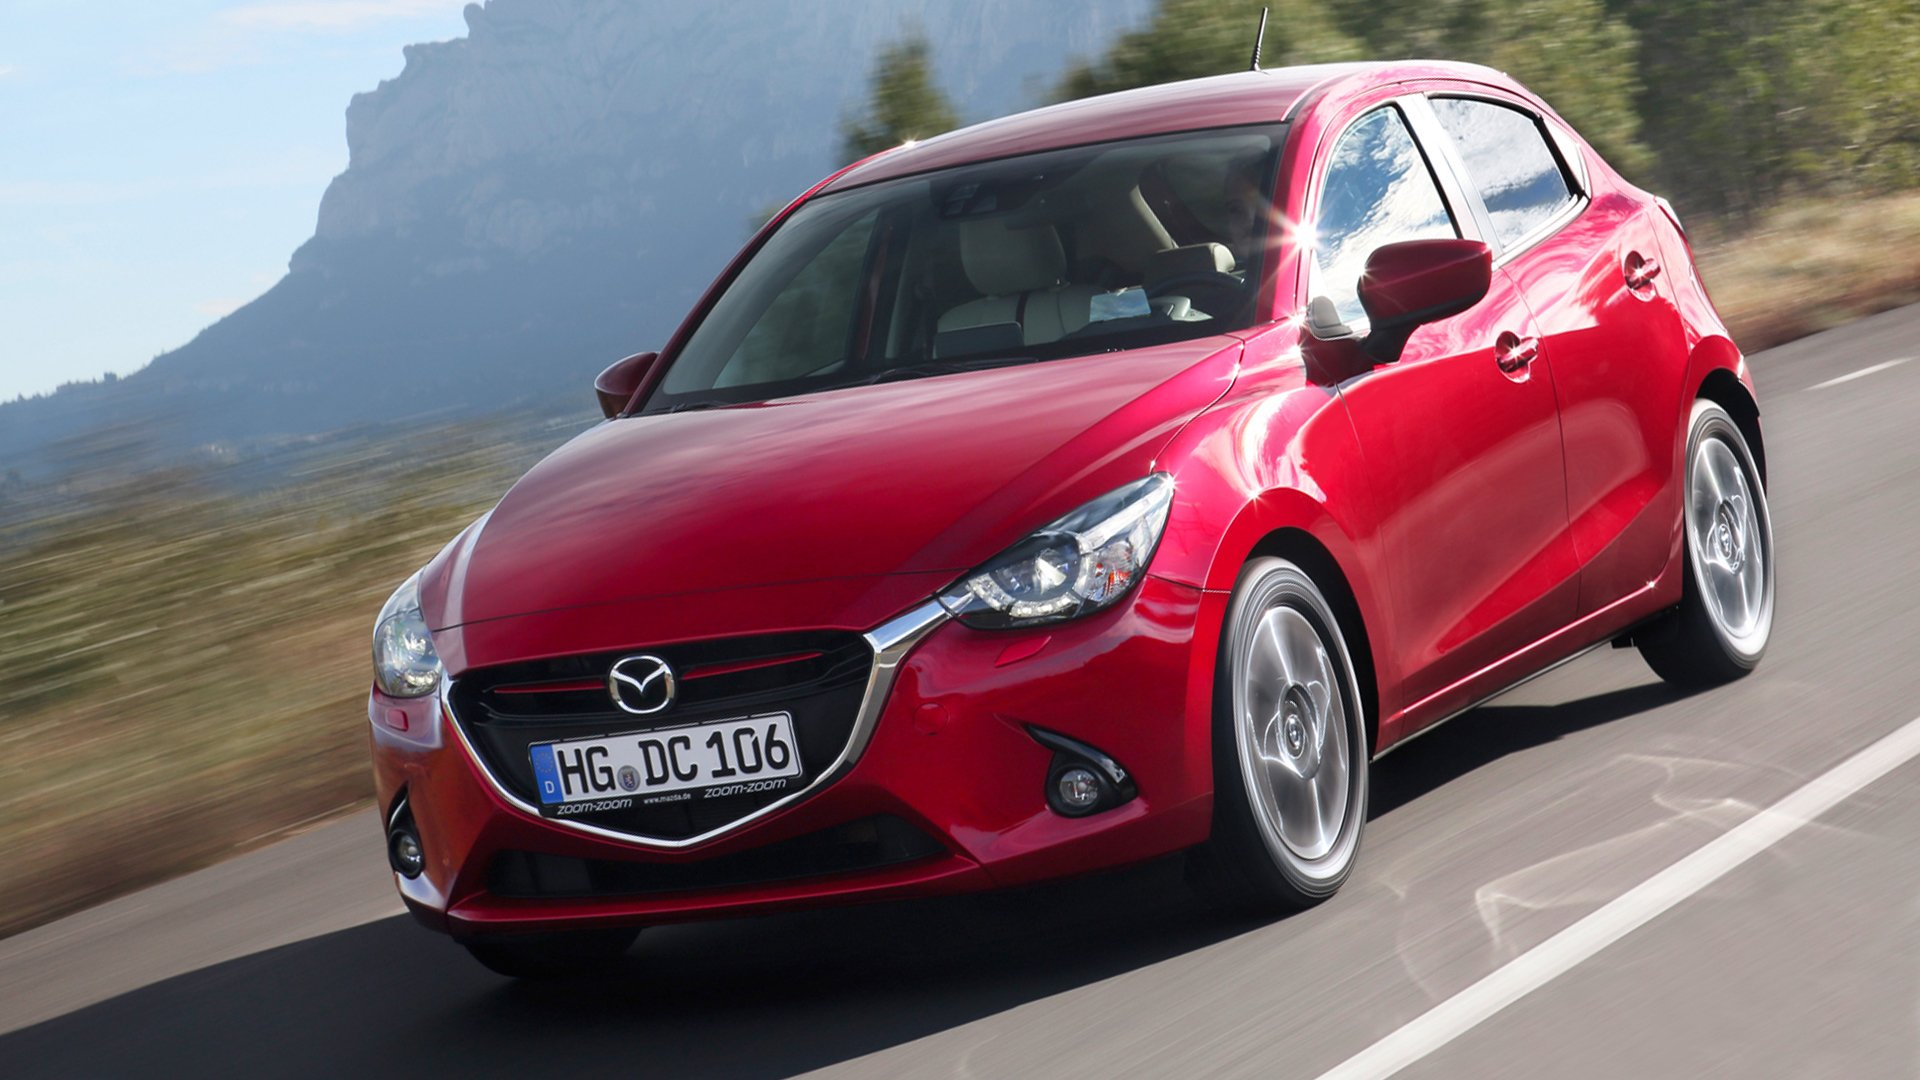 New 2018 Mazda 2 Photo Gallery HD